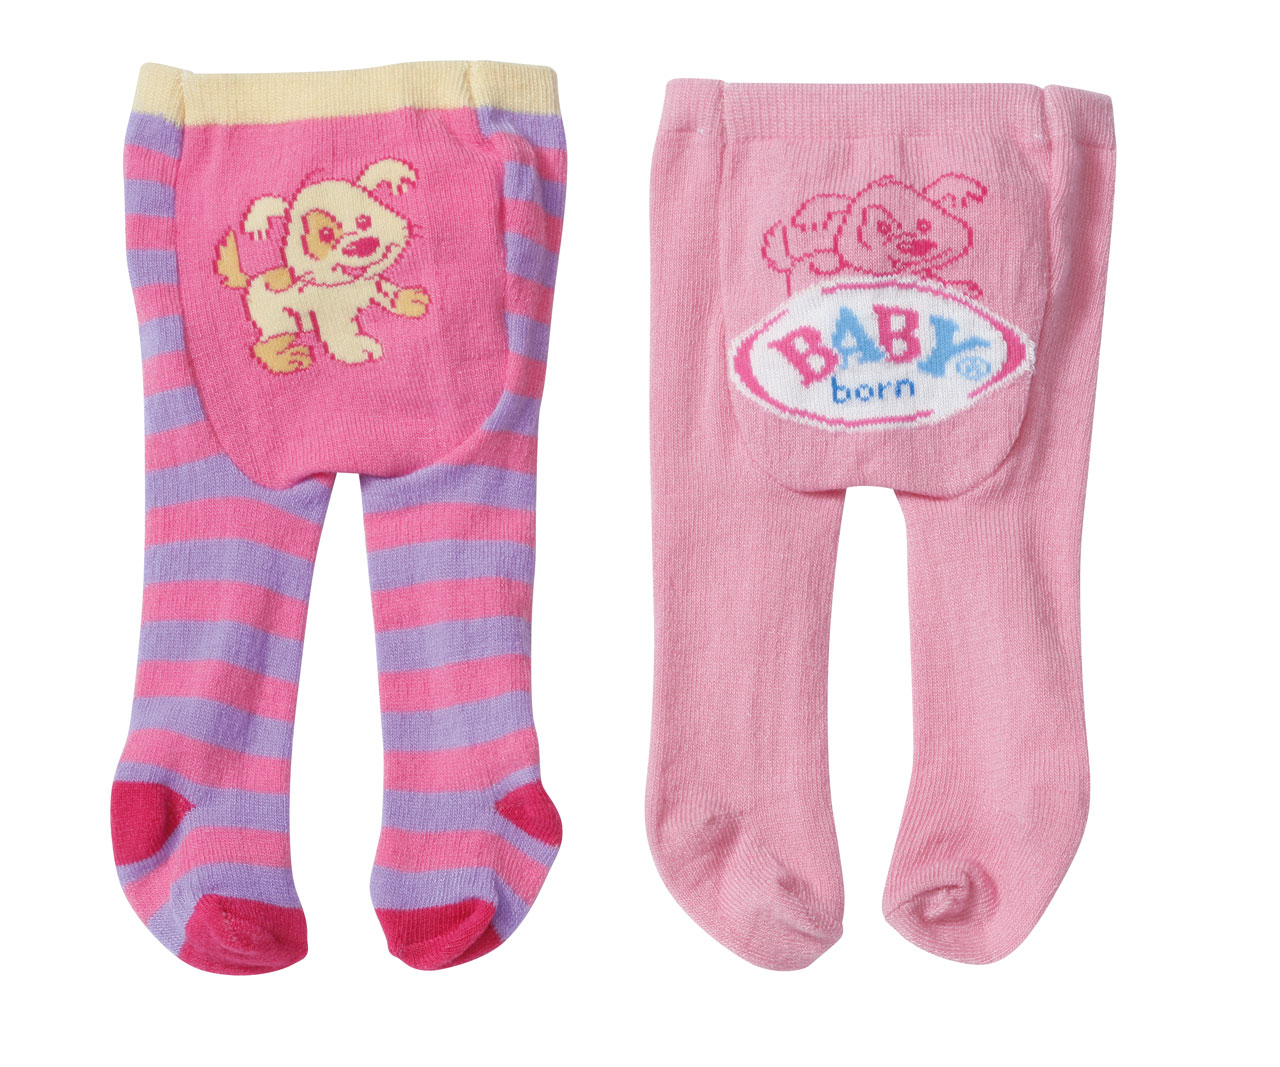 Baby Born Tights 2 Pairs Assorted Baby Born Prima Toys